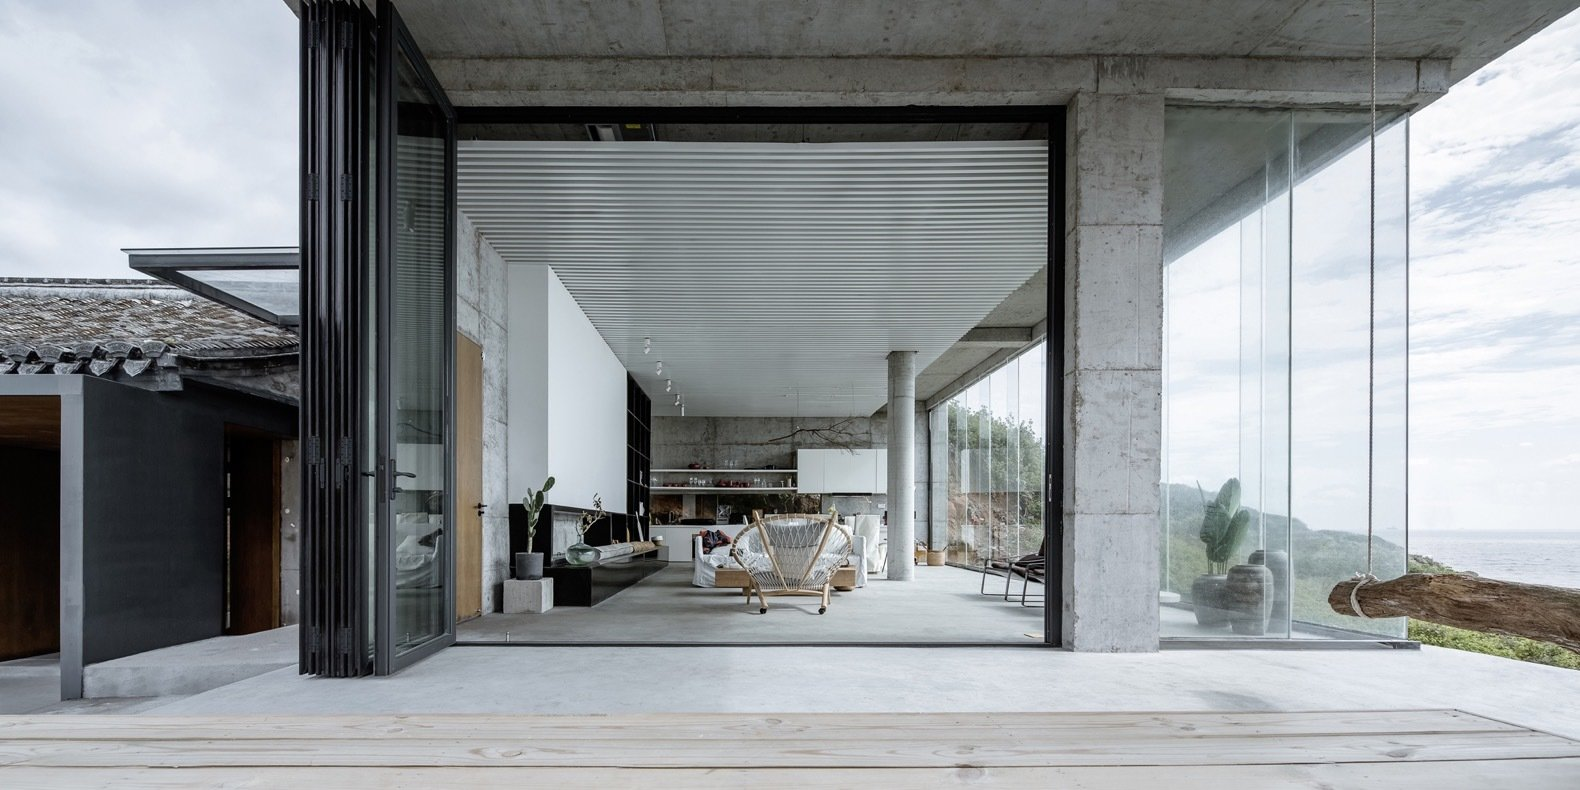 a-massive-folding-glass-wall-opens-to-connect-an-open-plan-living-area-to-the-outdoors